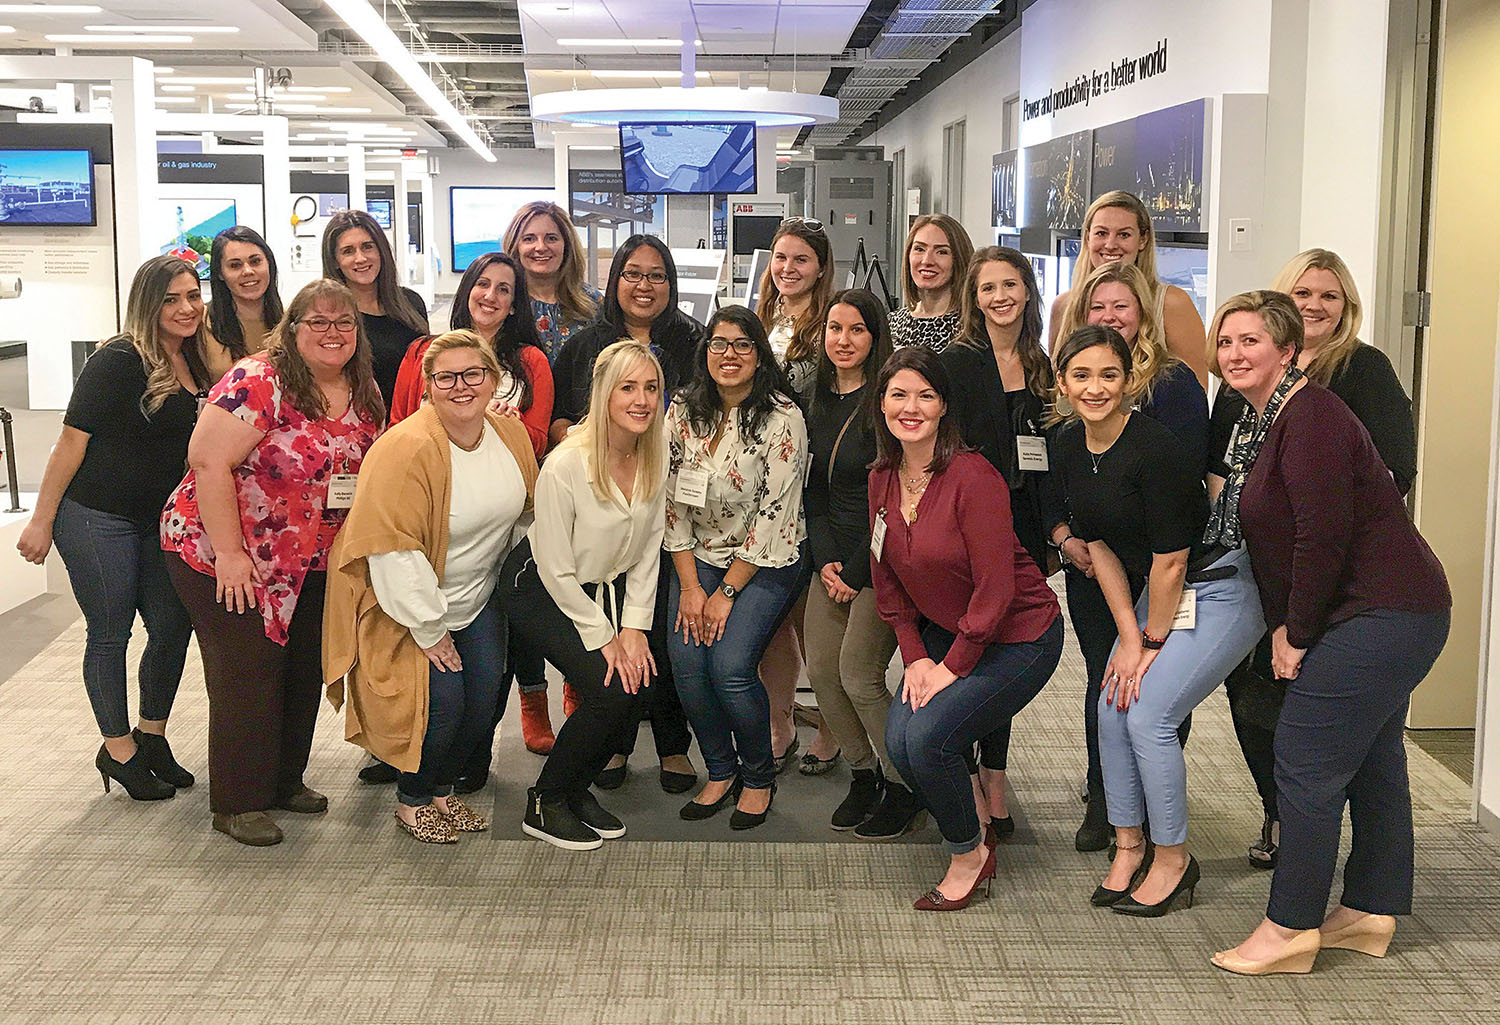 About 25 women from the Houston area gathered January 9 at ABB Marine & Ports' facility there for the first meeting of what will become the Houston chapter of WIMOs. (Photo courtesy of WIMOs)